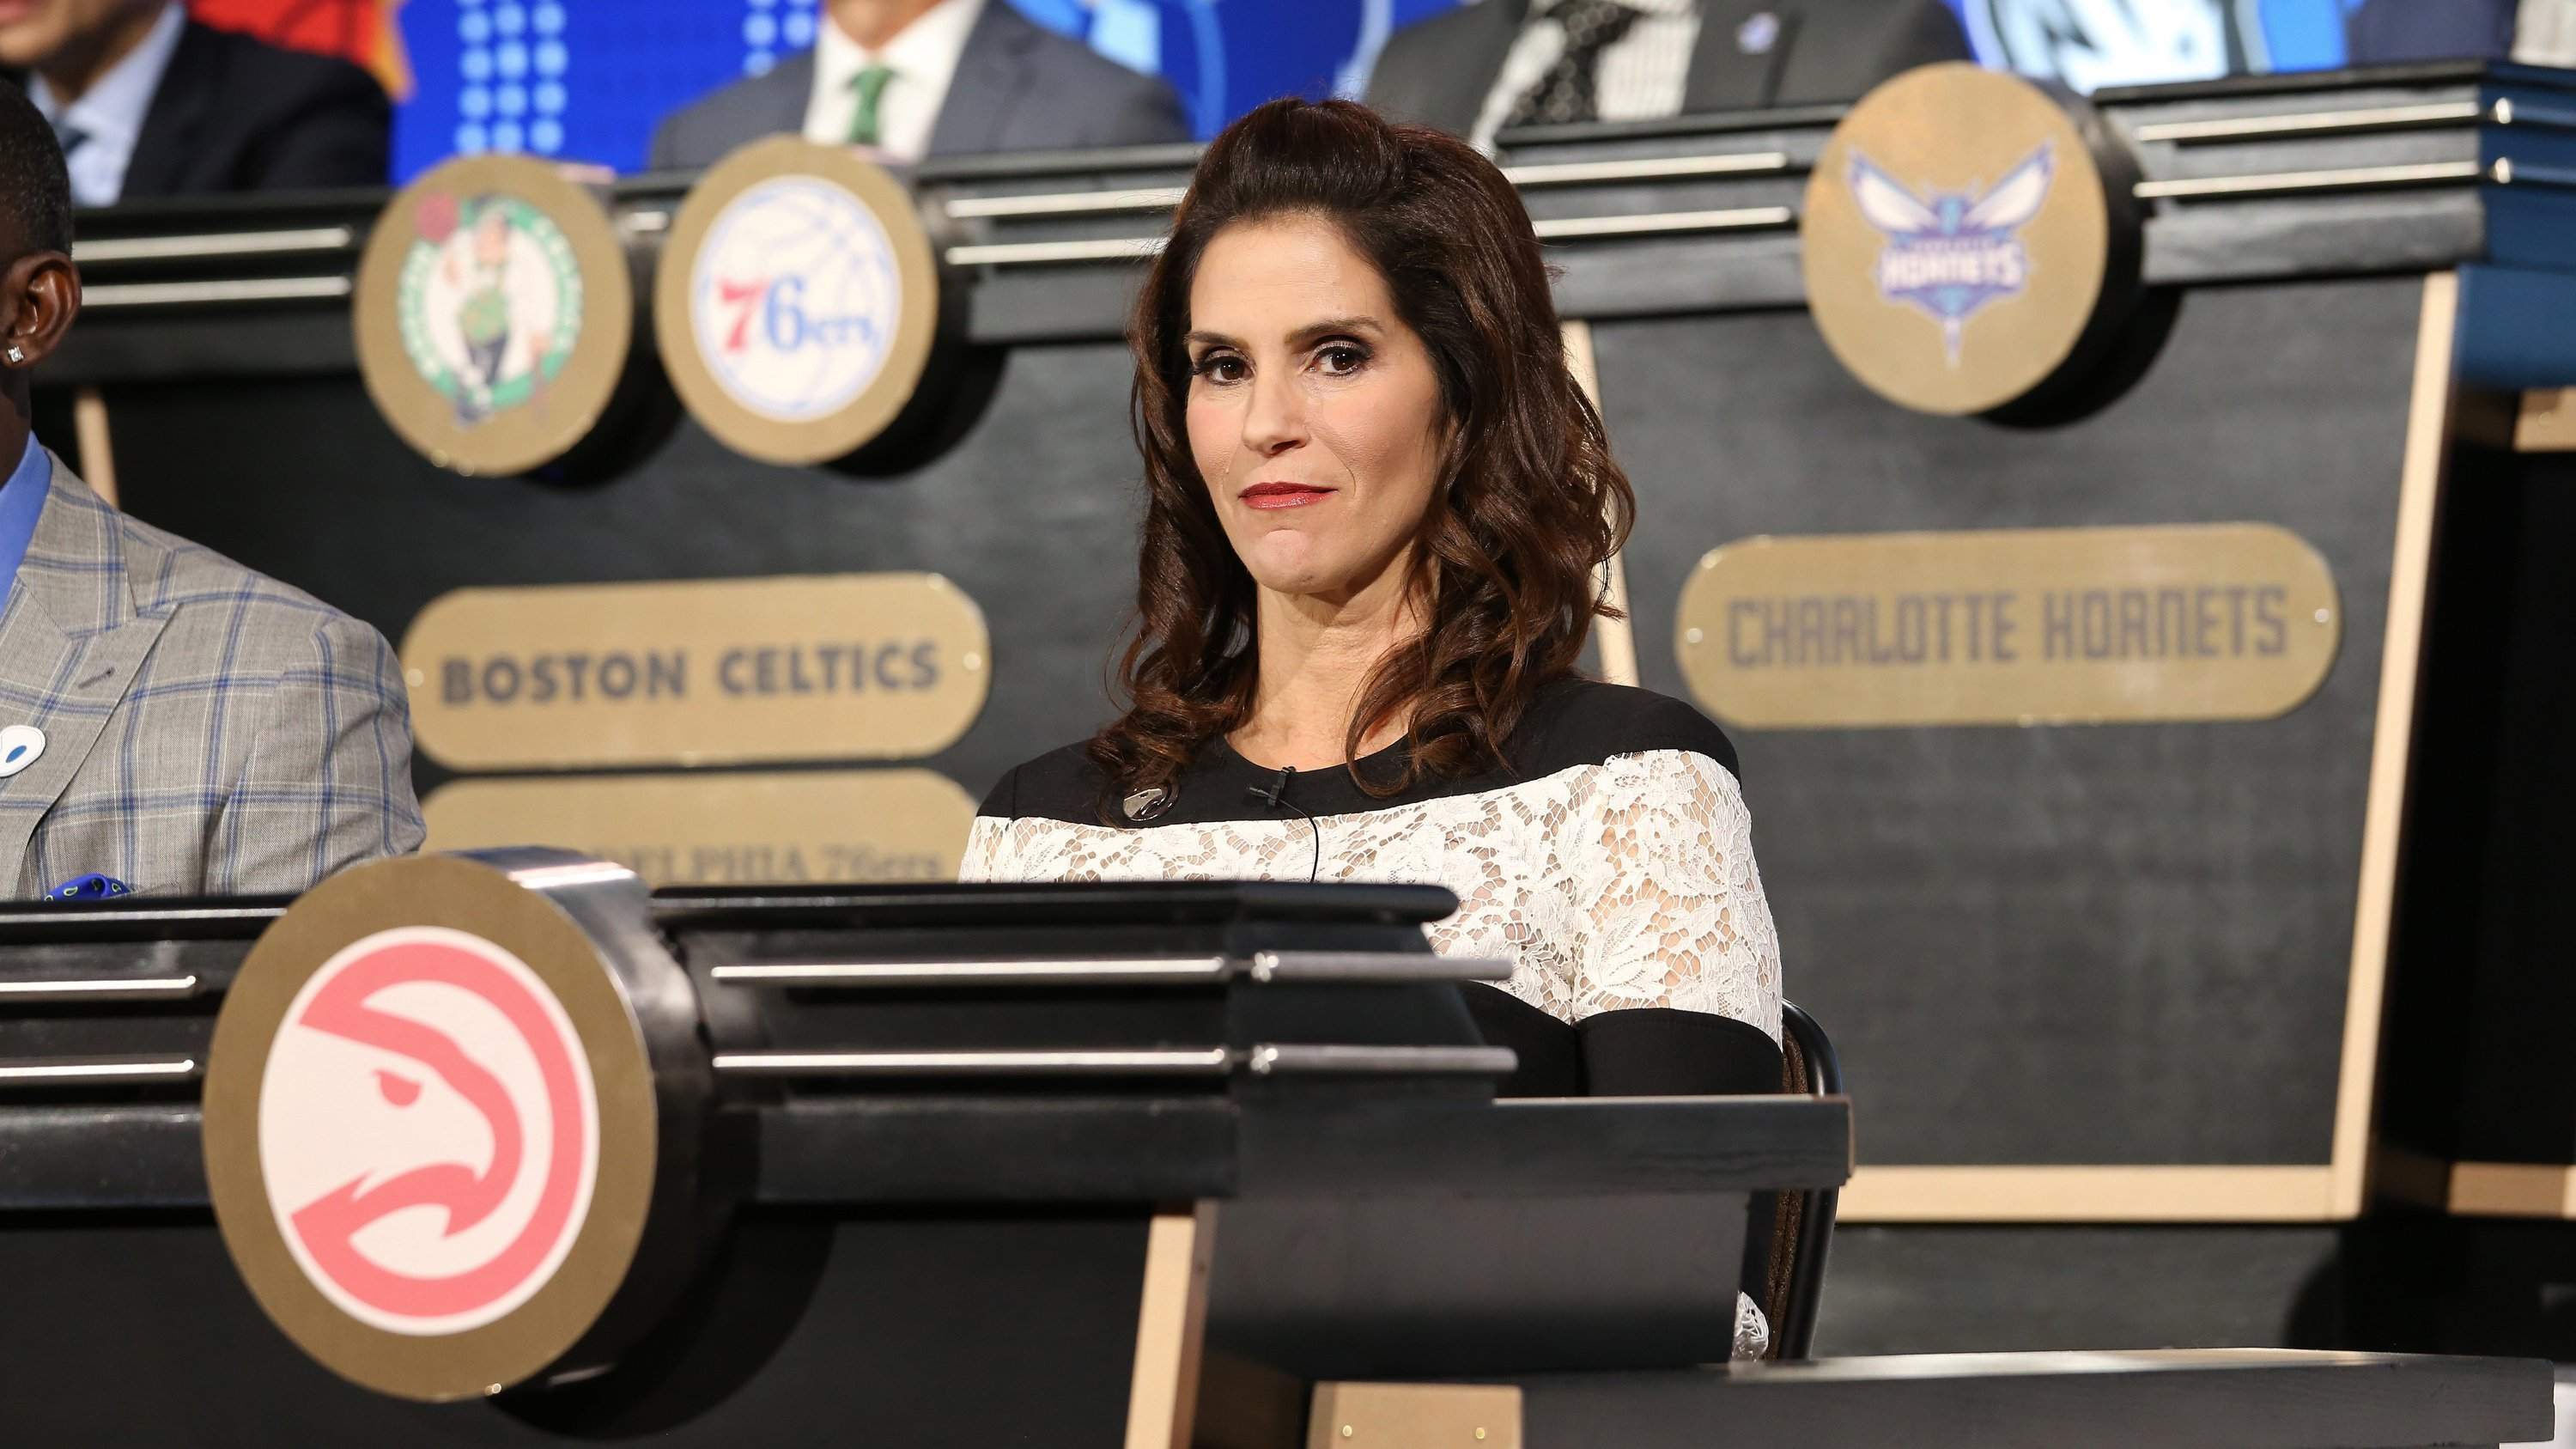 """Actress Jami Gertz, who is best known for her roles in TV shows such as """"Square Pegs"""" and """"Seinfeld"""" and films including """"The Lost Boys"""" and """"Less Than Zero,"""" was there representing the Atlanta Hawks at the NBA Draft Lottery."""